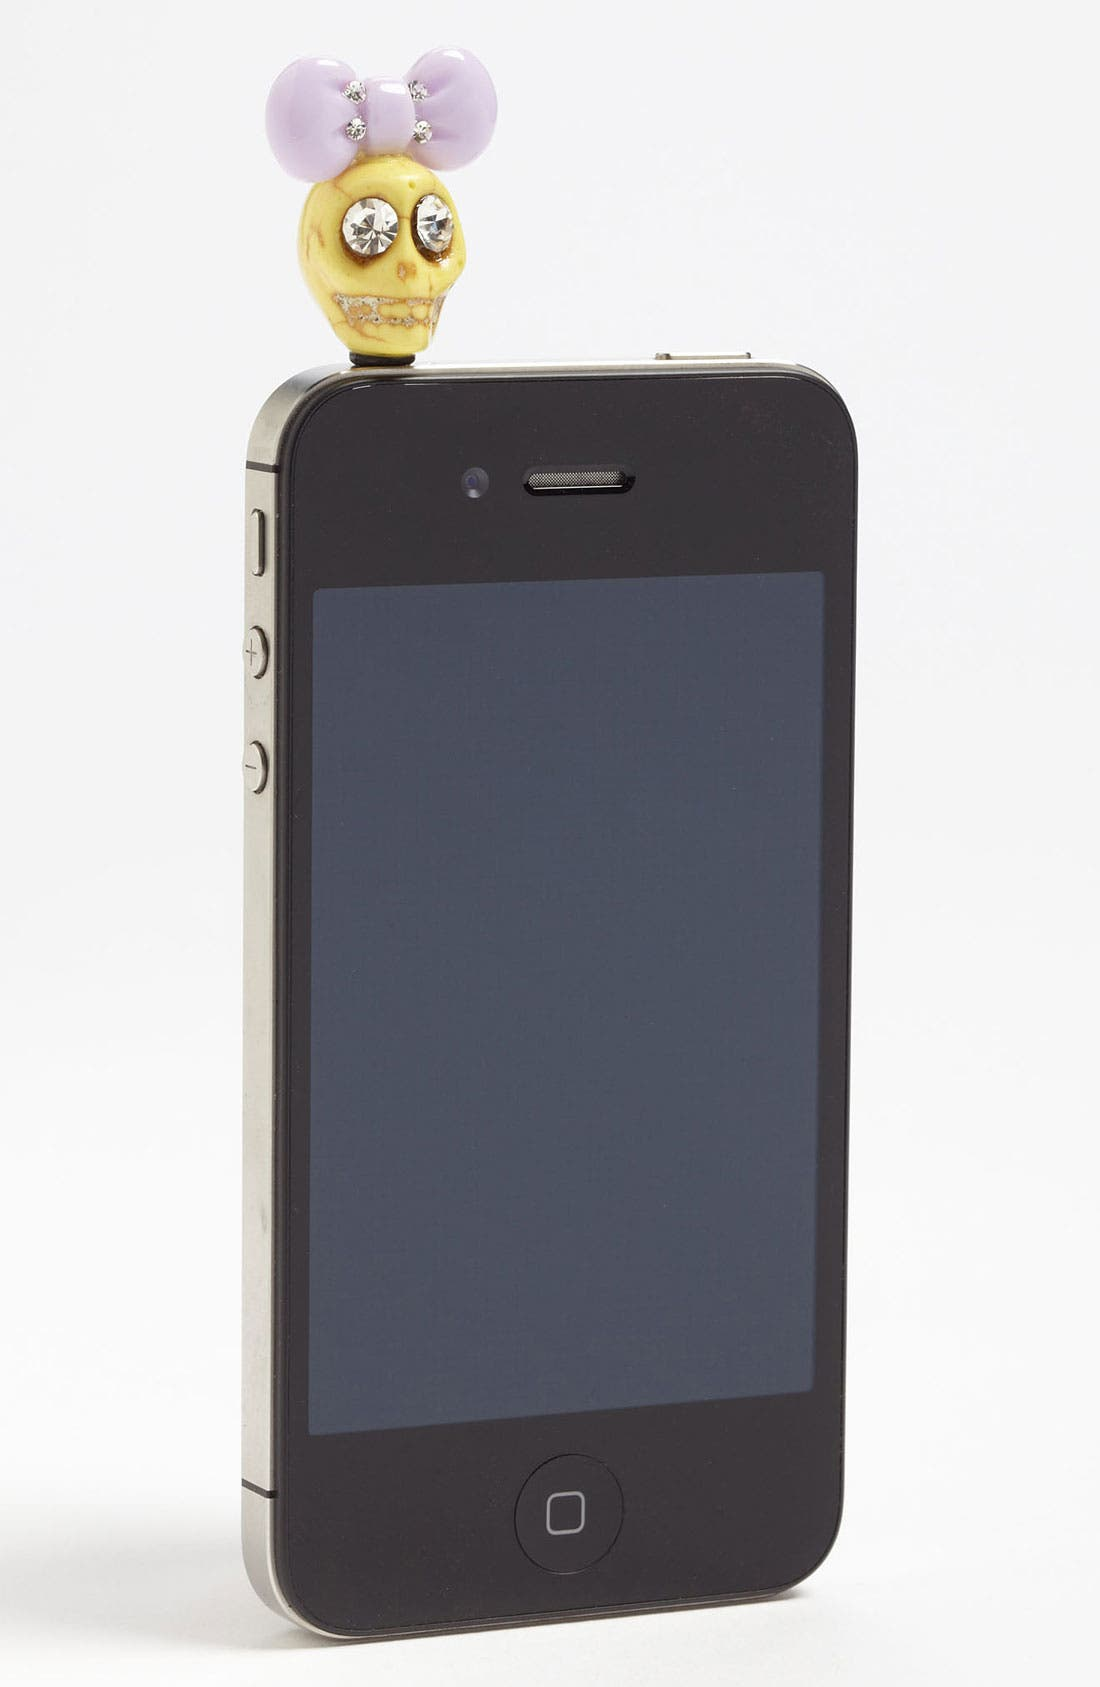 Alternate Image 1 Selected - Cara 'Skull with Bow' Smartphone Charm